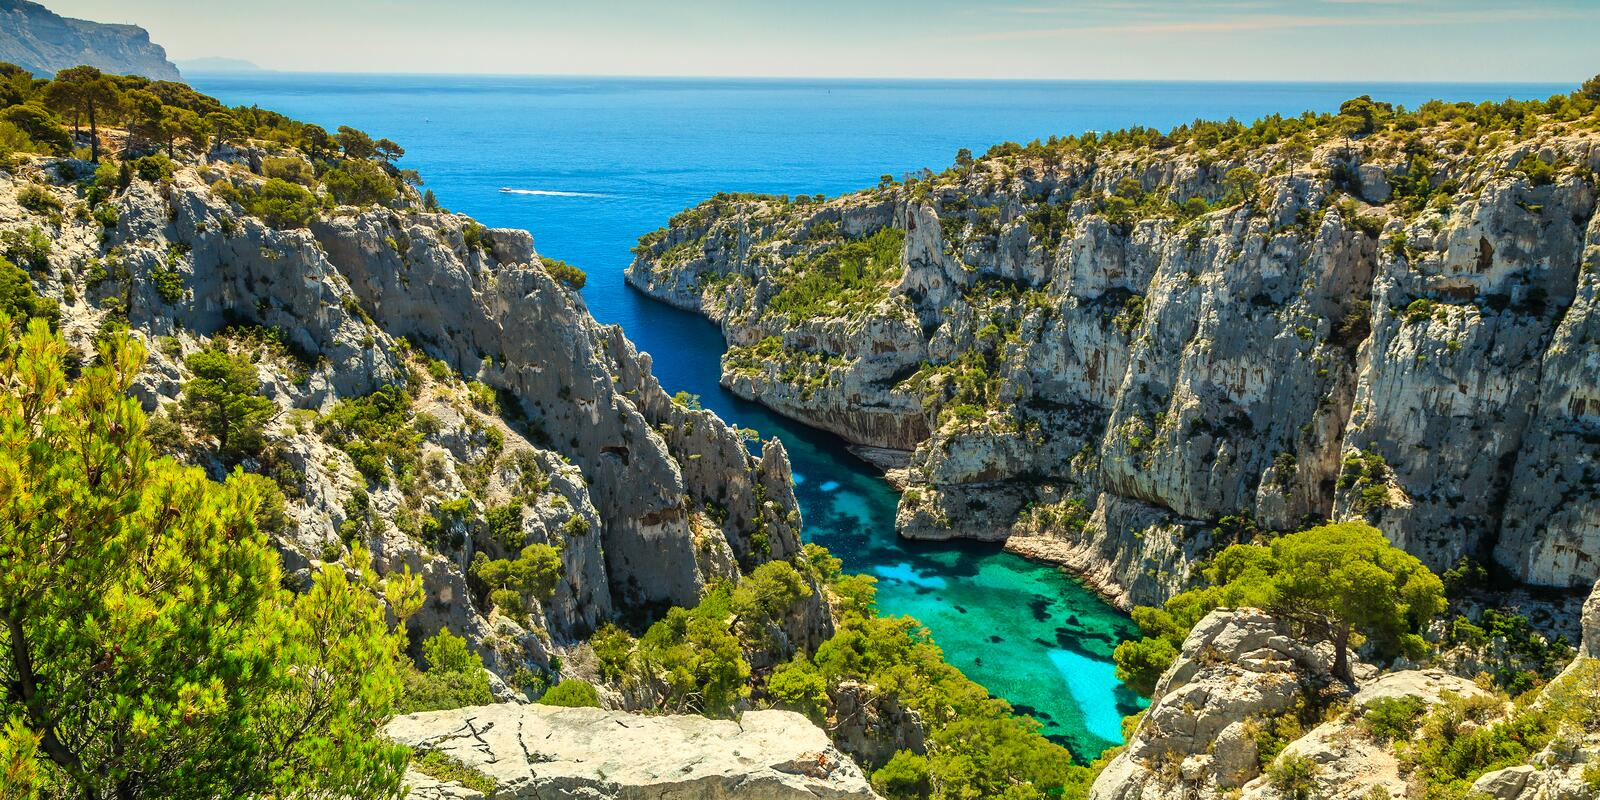 Cruise on board a magnificent classic yacht between the Calanques and Porquerolles in all inclusive